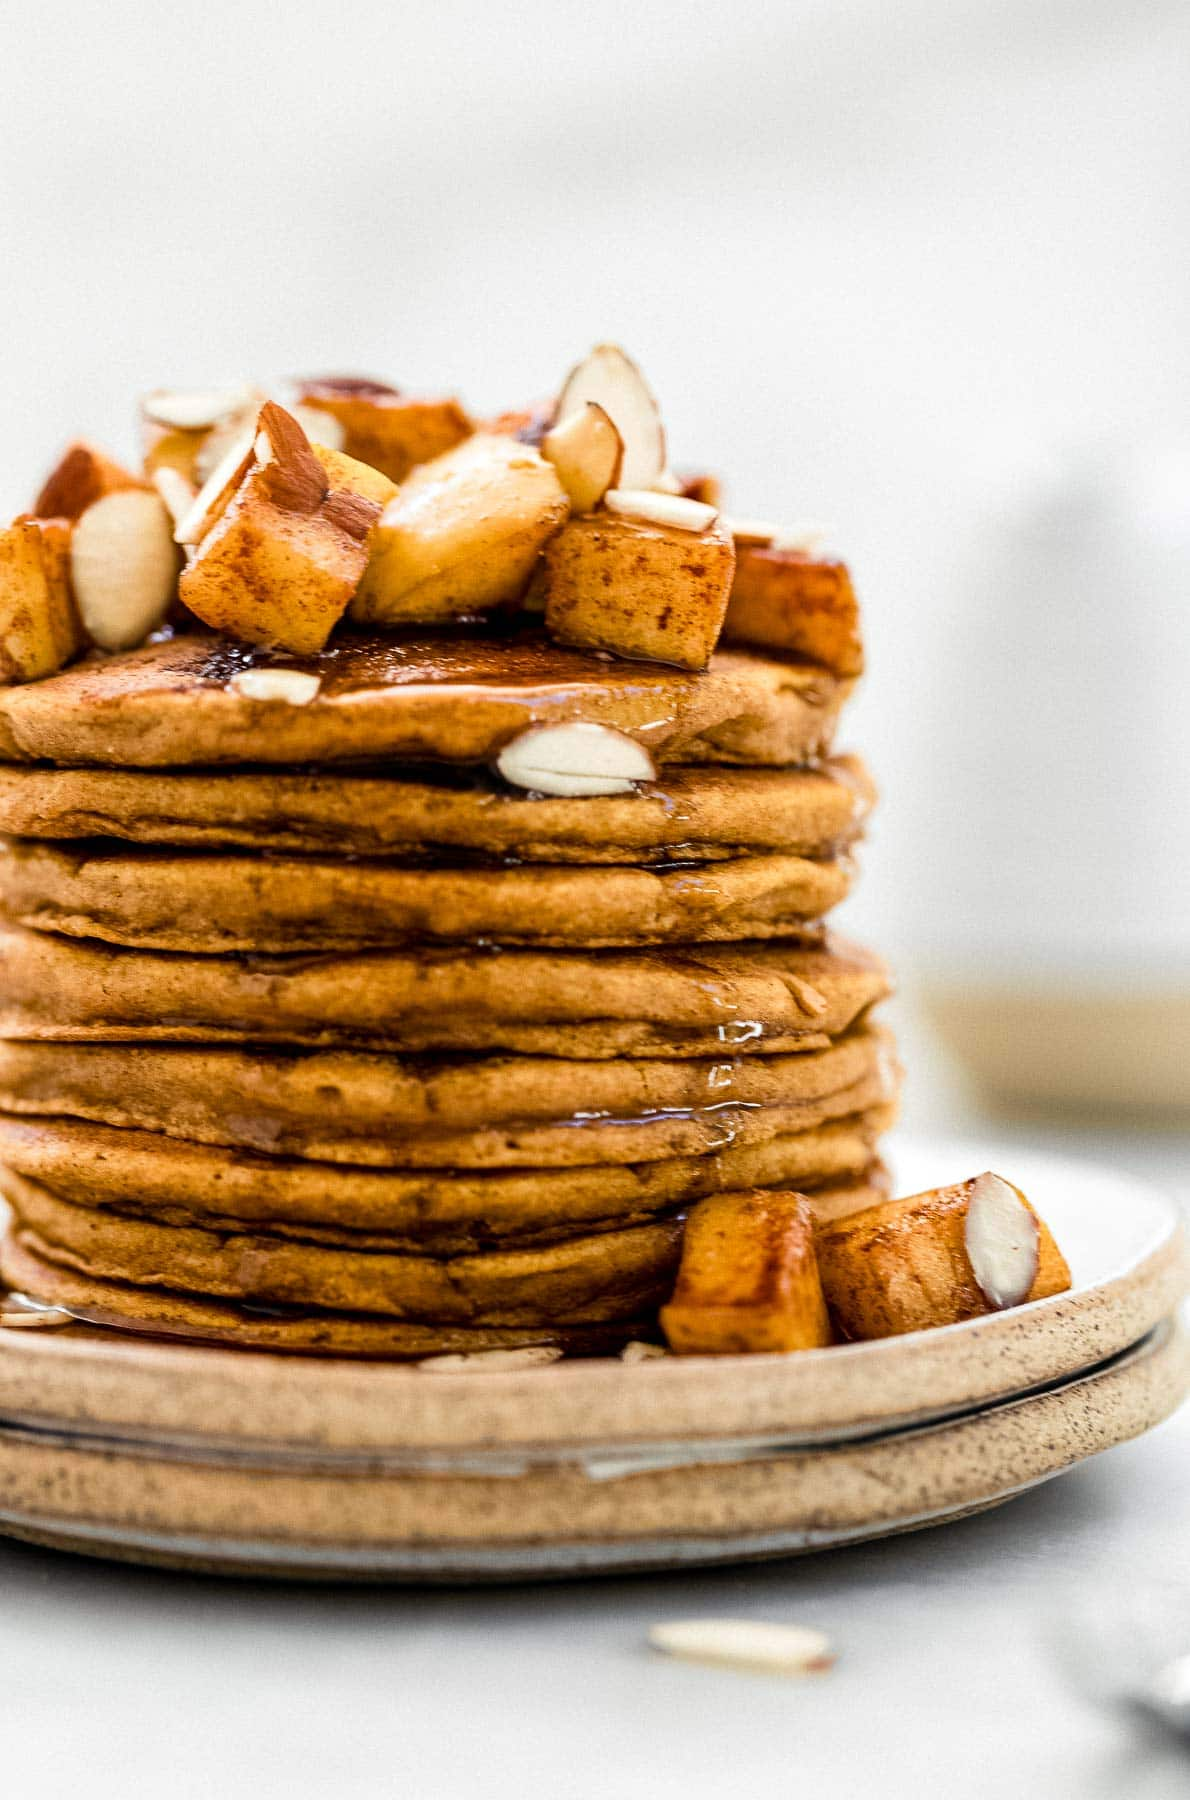 Stack of vegan sweet potato pancakes with cinnamon apples.